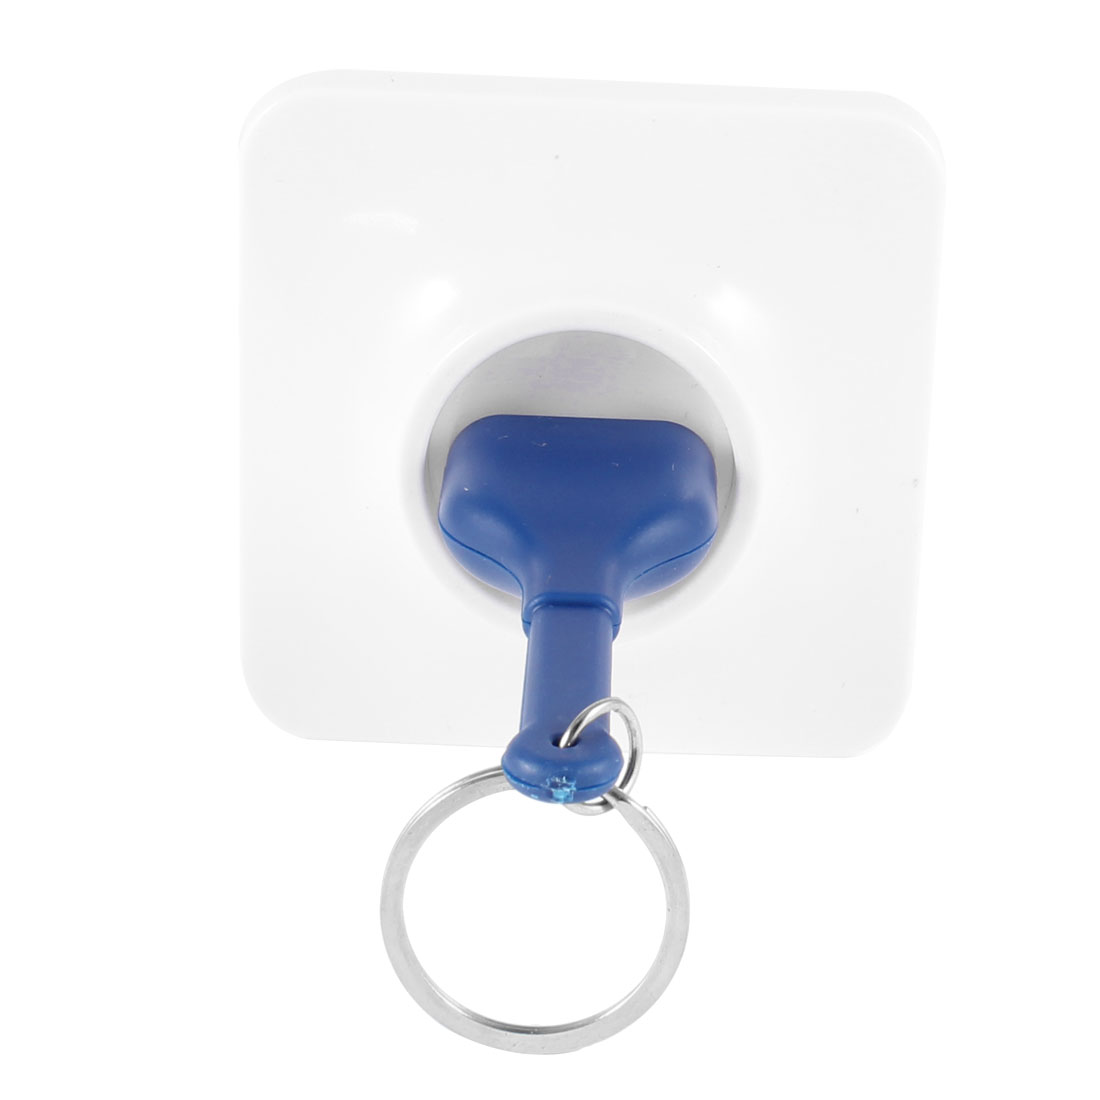 Blue Unplugged Unplug Socket Keyring Keychain Key Storage w White Base